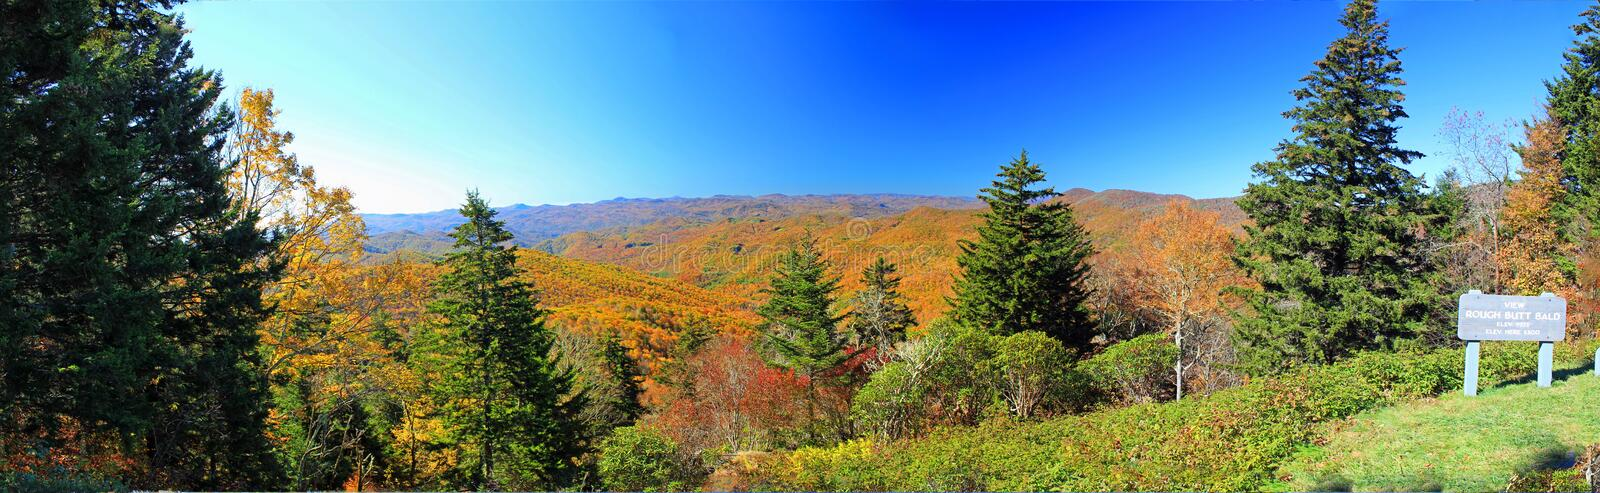 Blue Ridge Mountains in the fall stock image